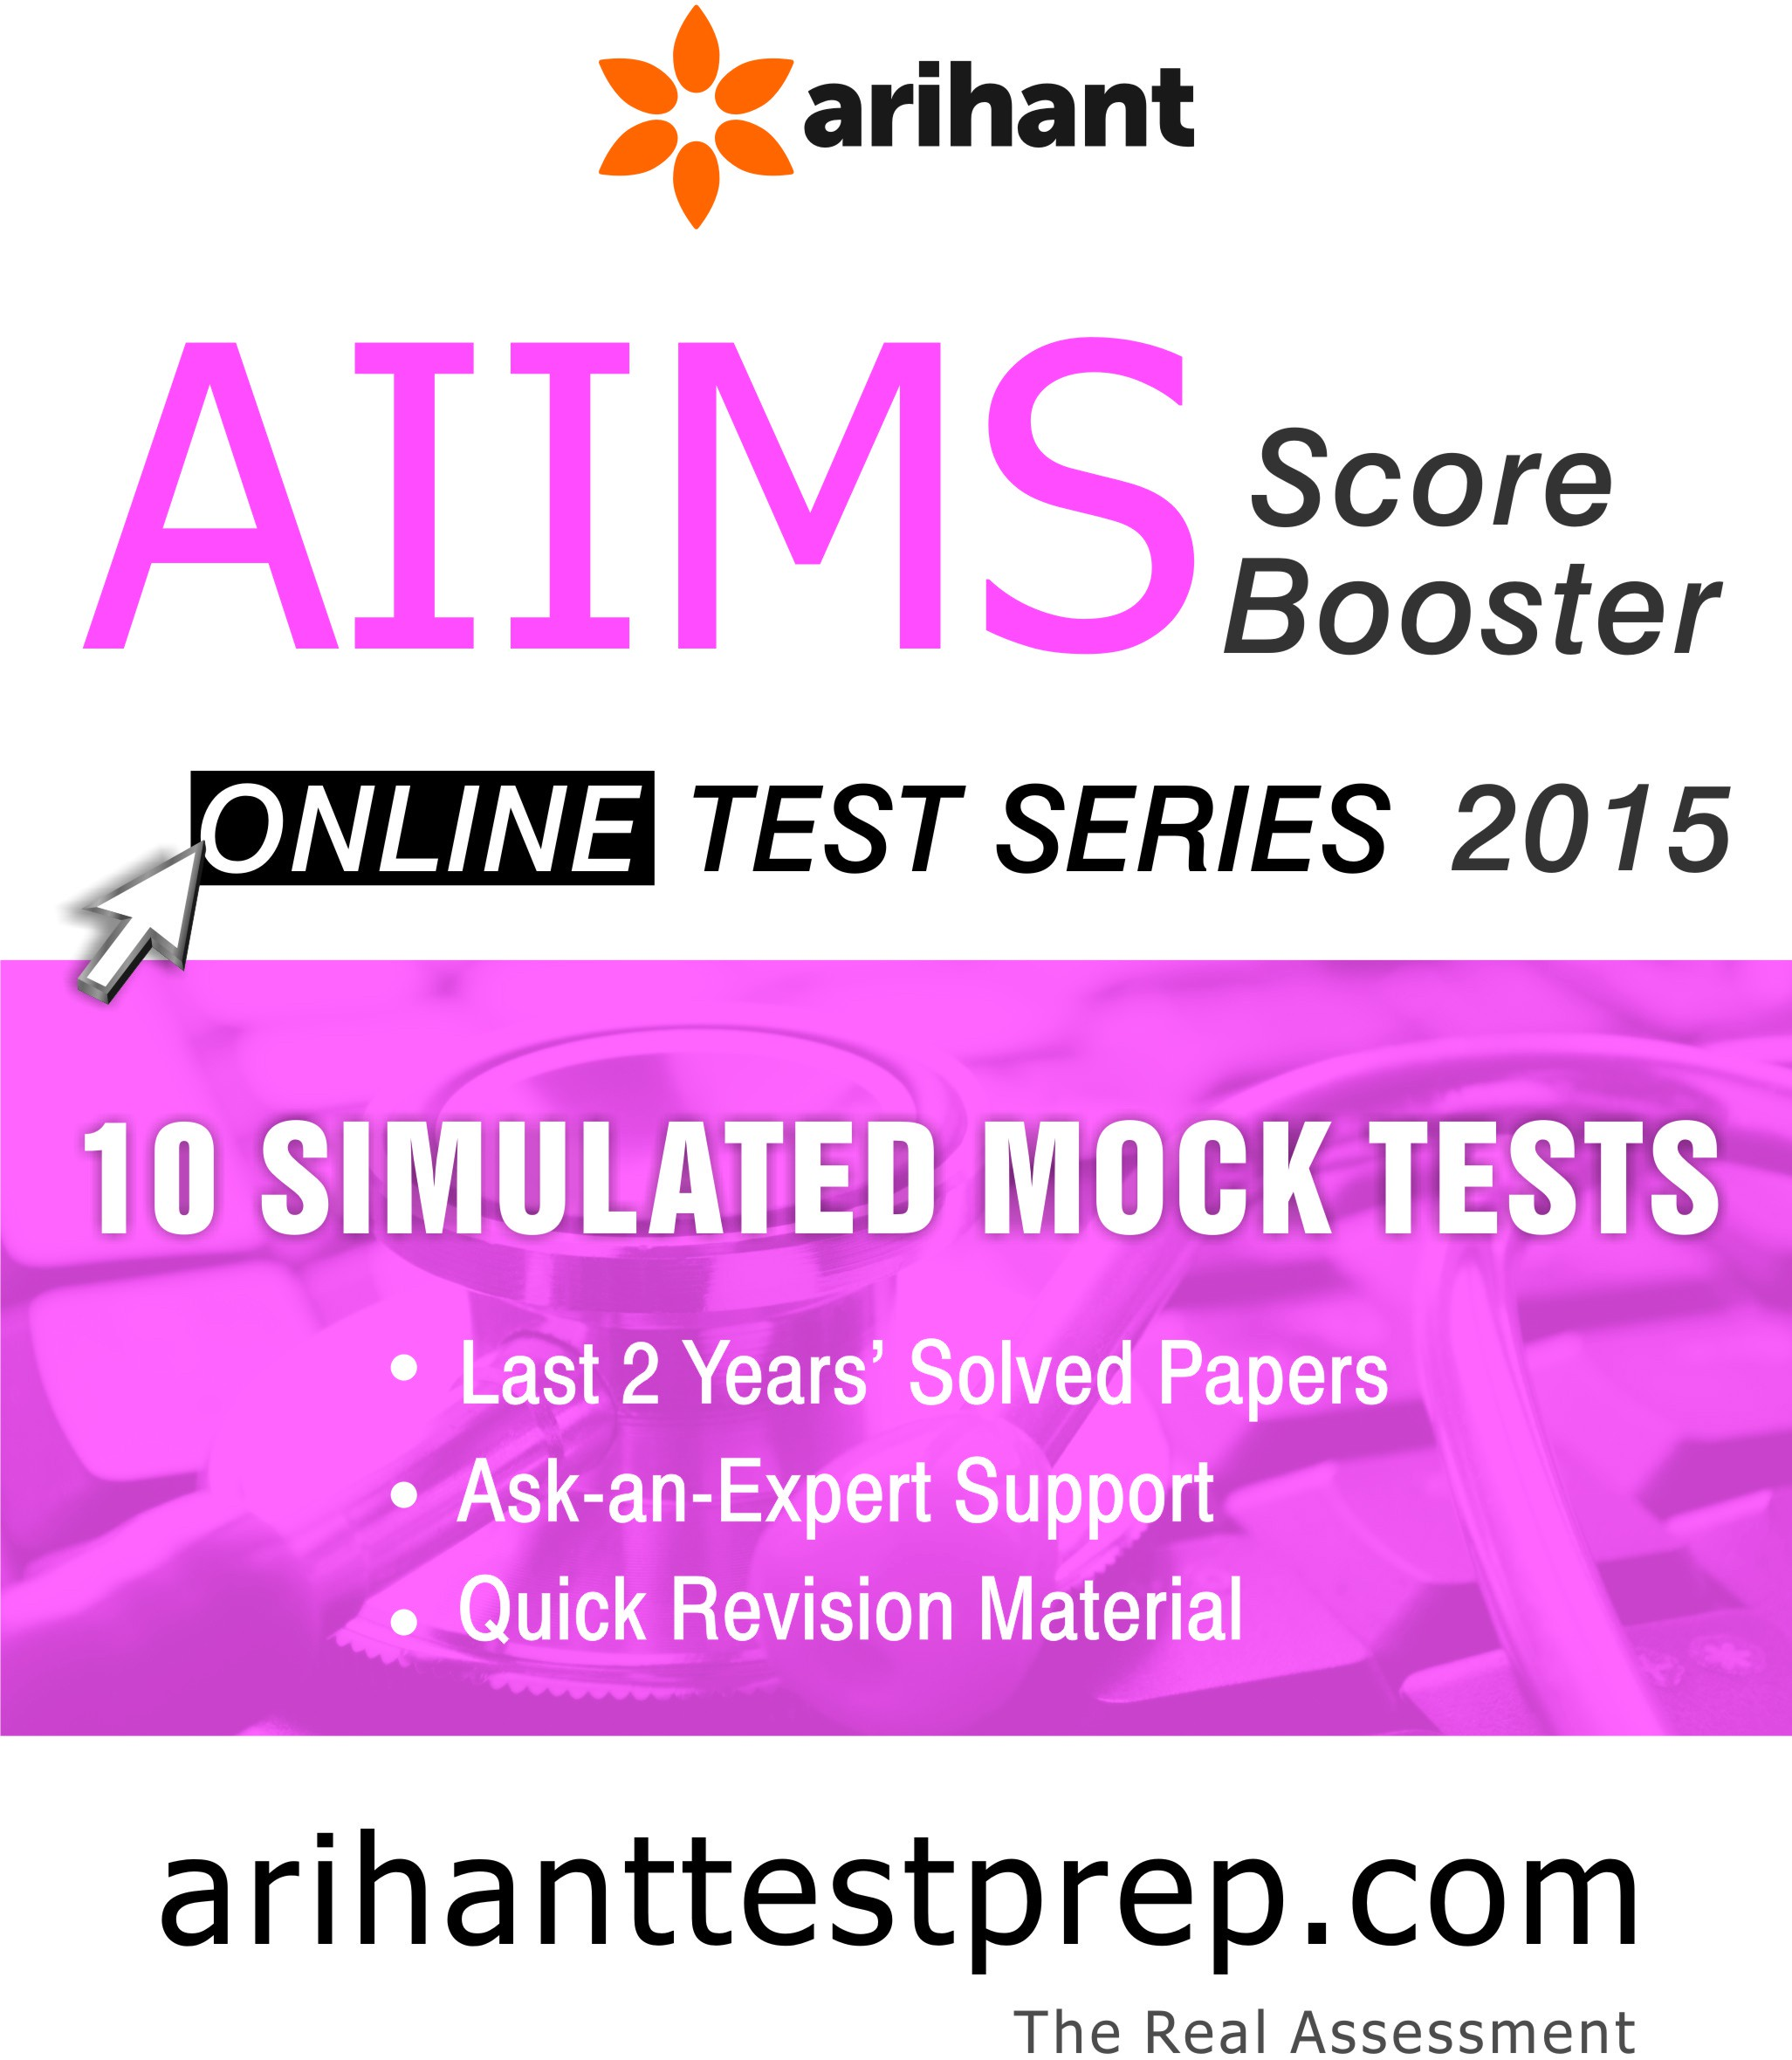 Arihant AIIMS Test Series Online Test(Voucher)